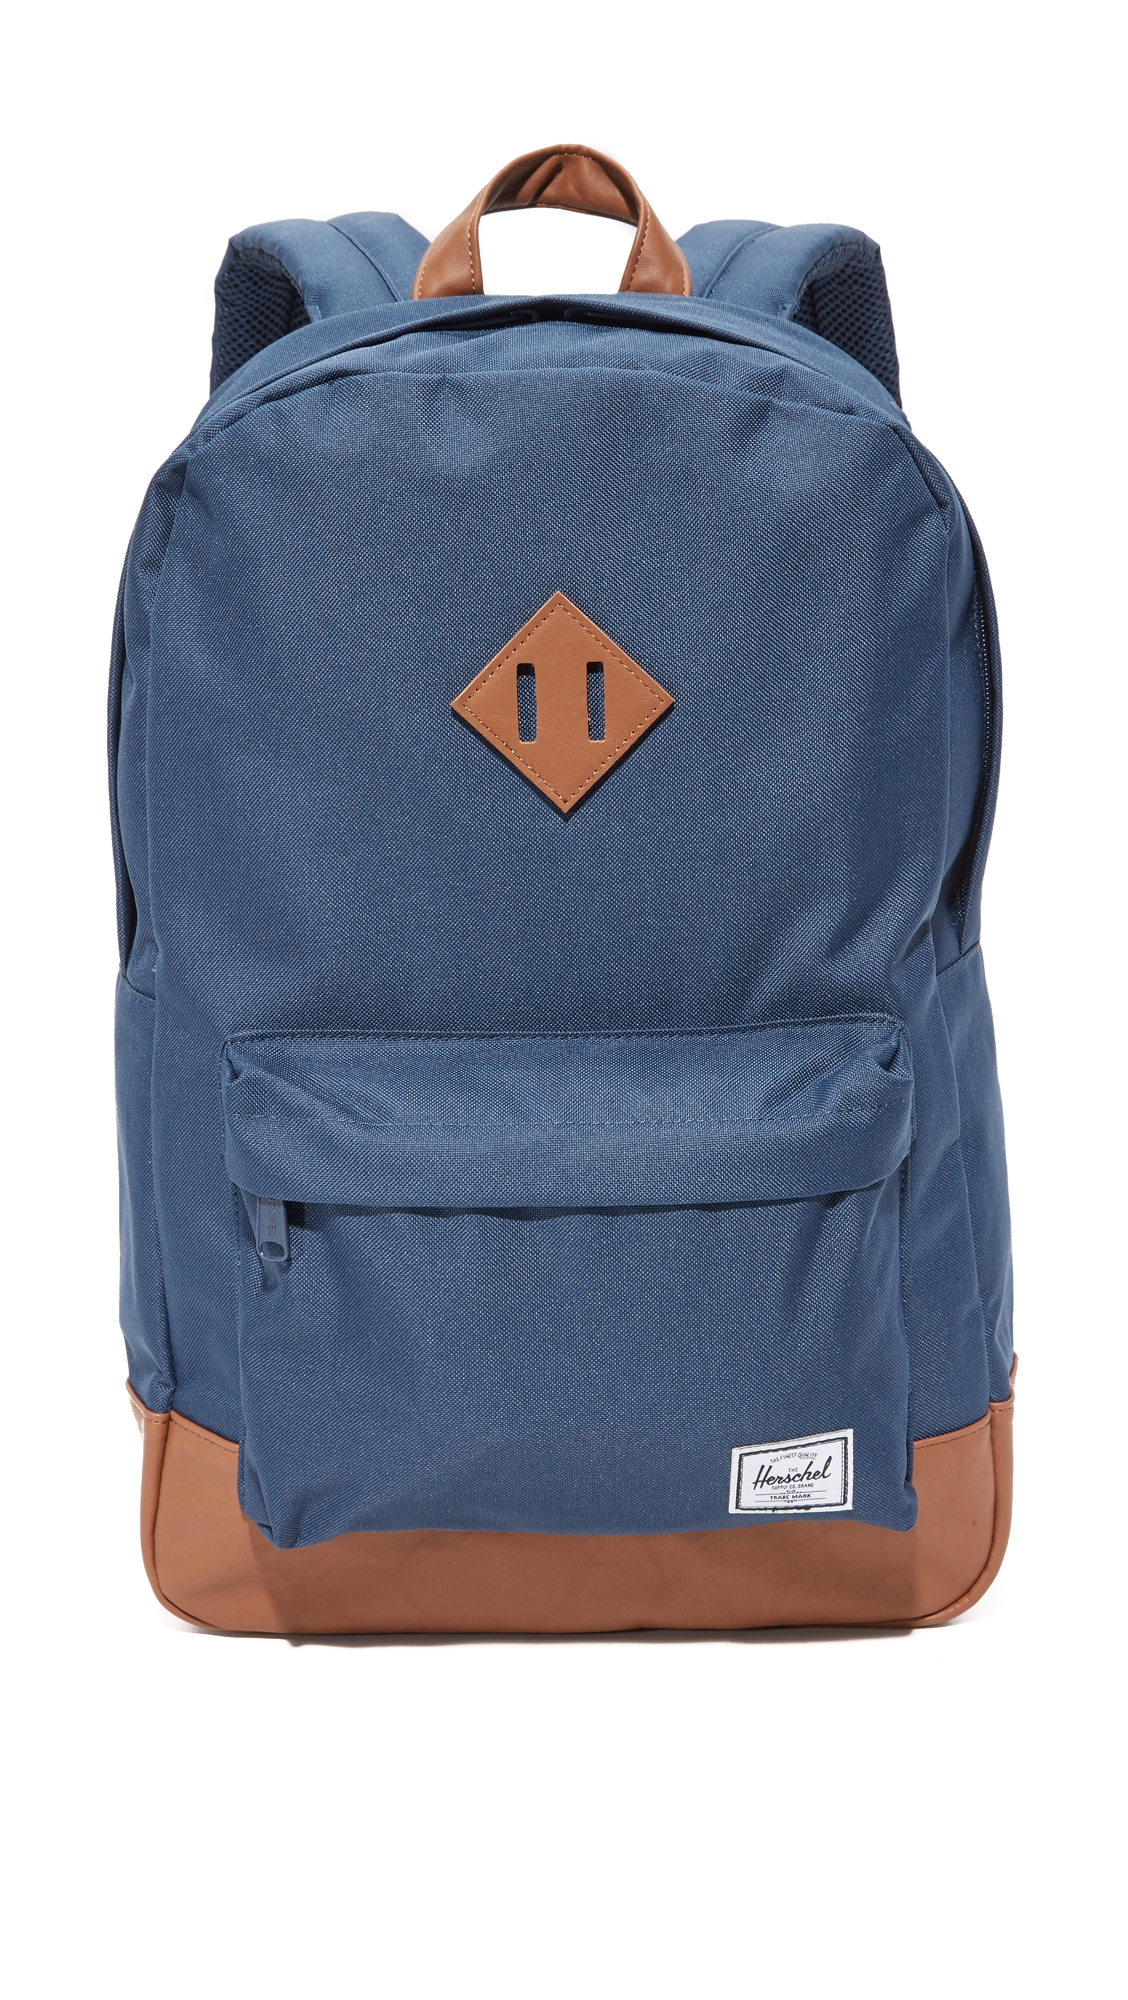 Heritage Classic Backpack in Navy